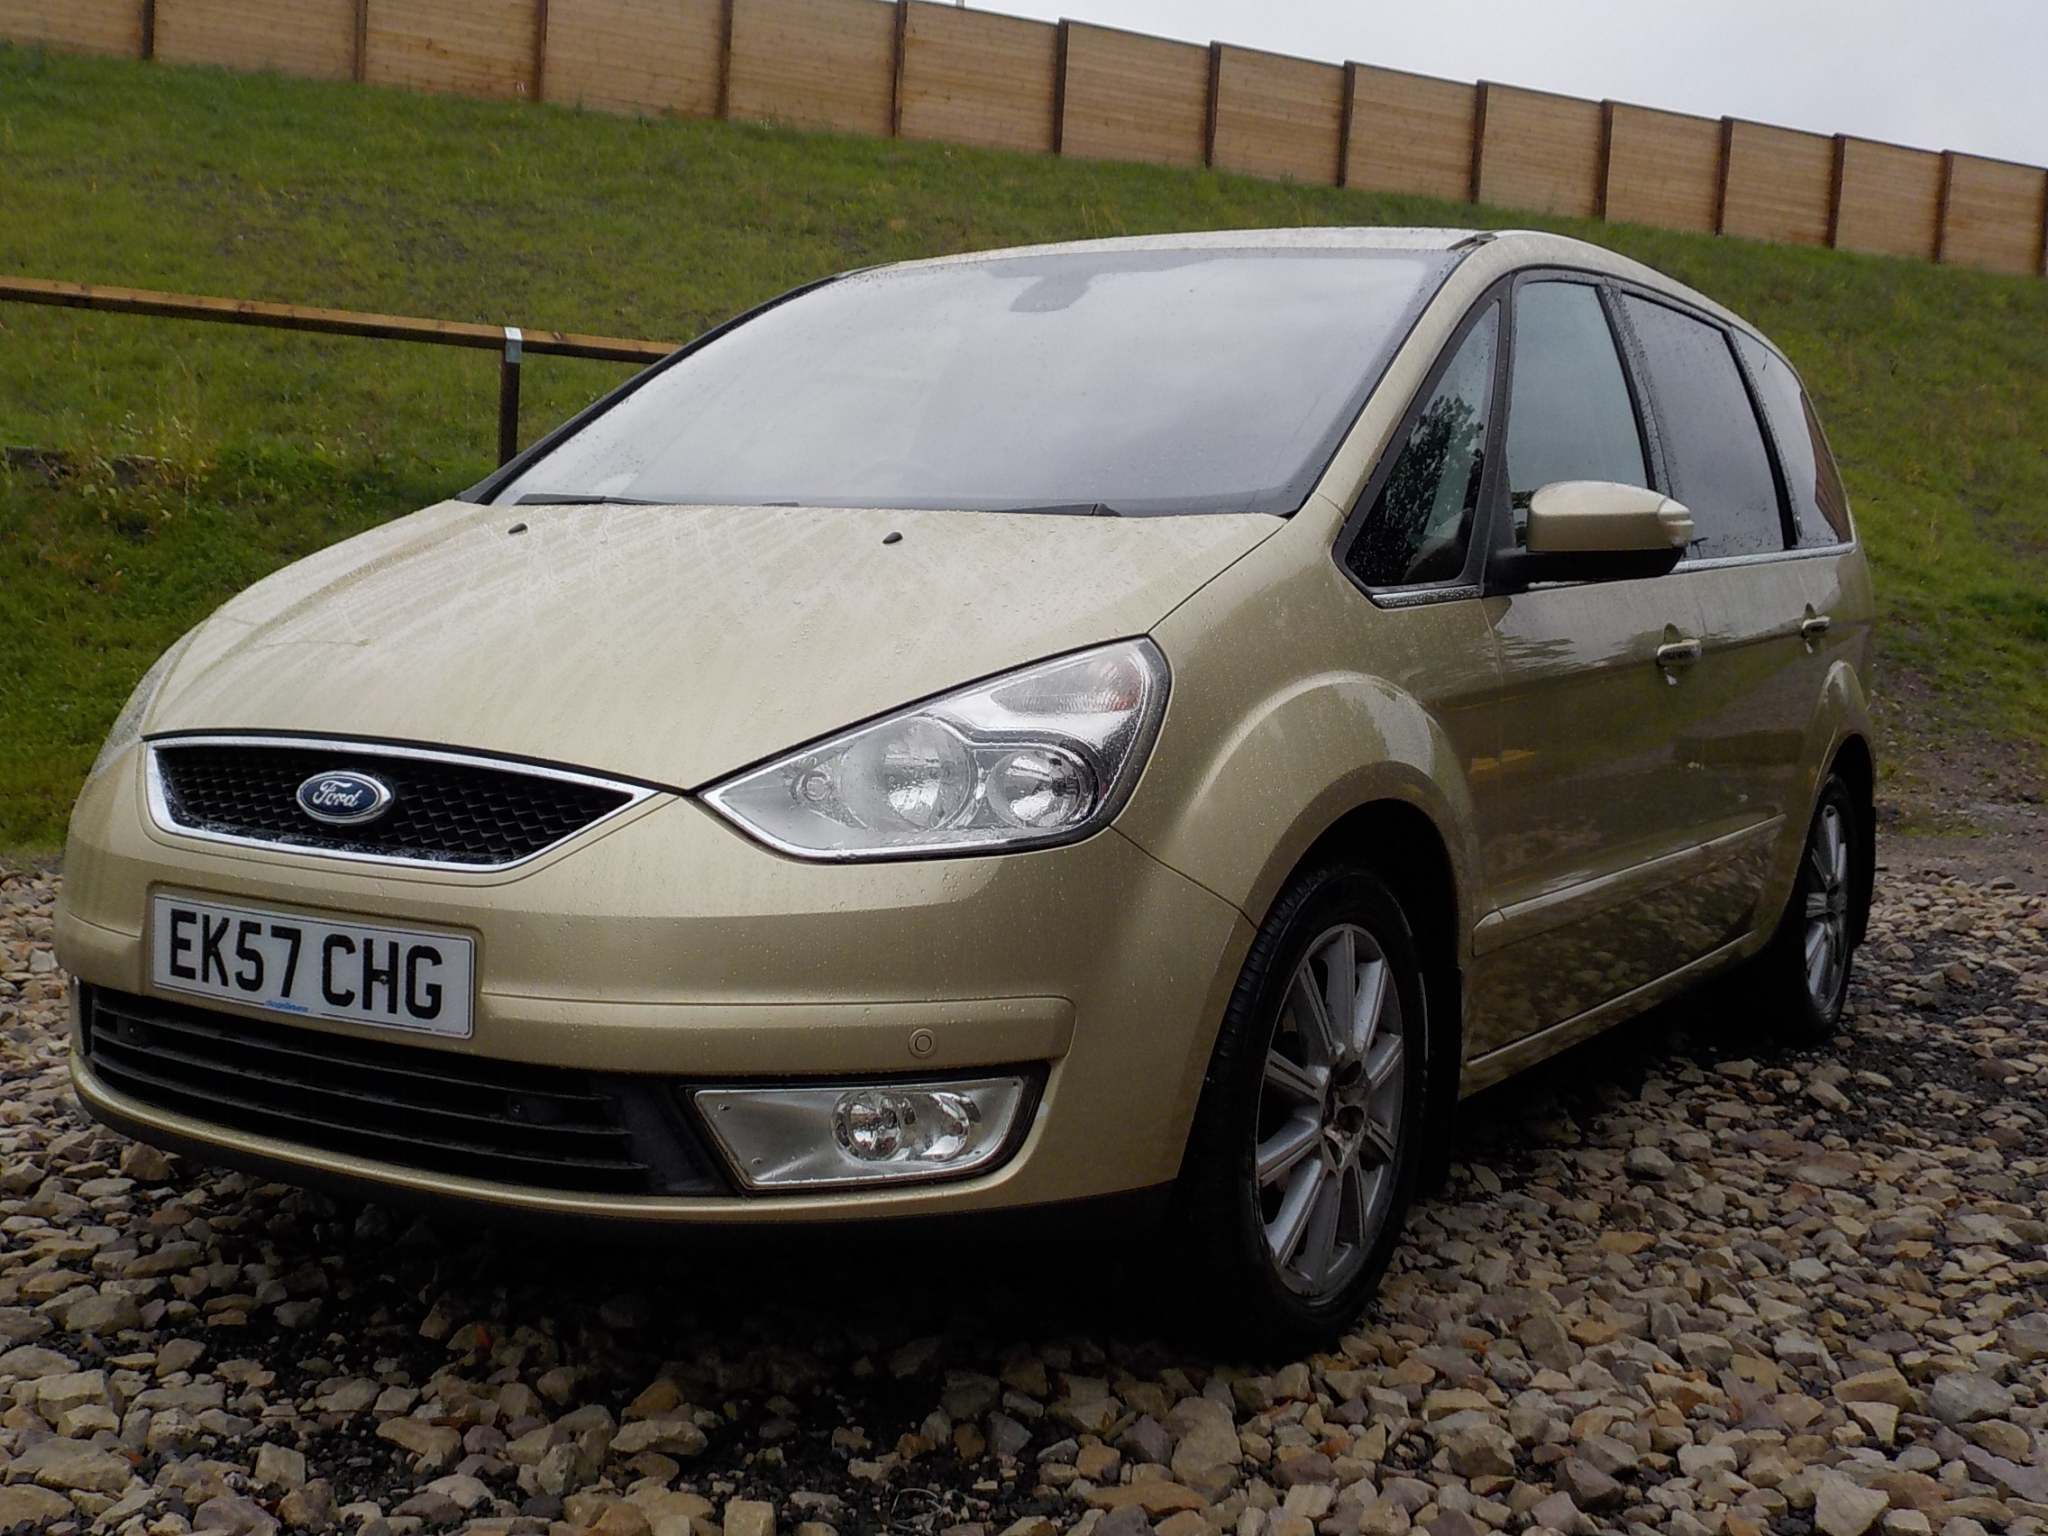 Ford Galaxy 1.8 TDCi Ghia 5dr